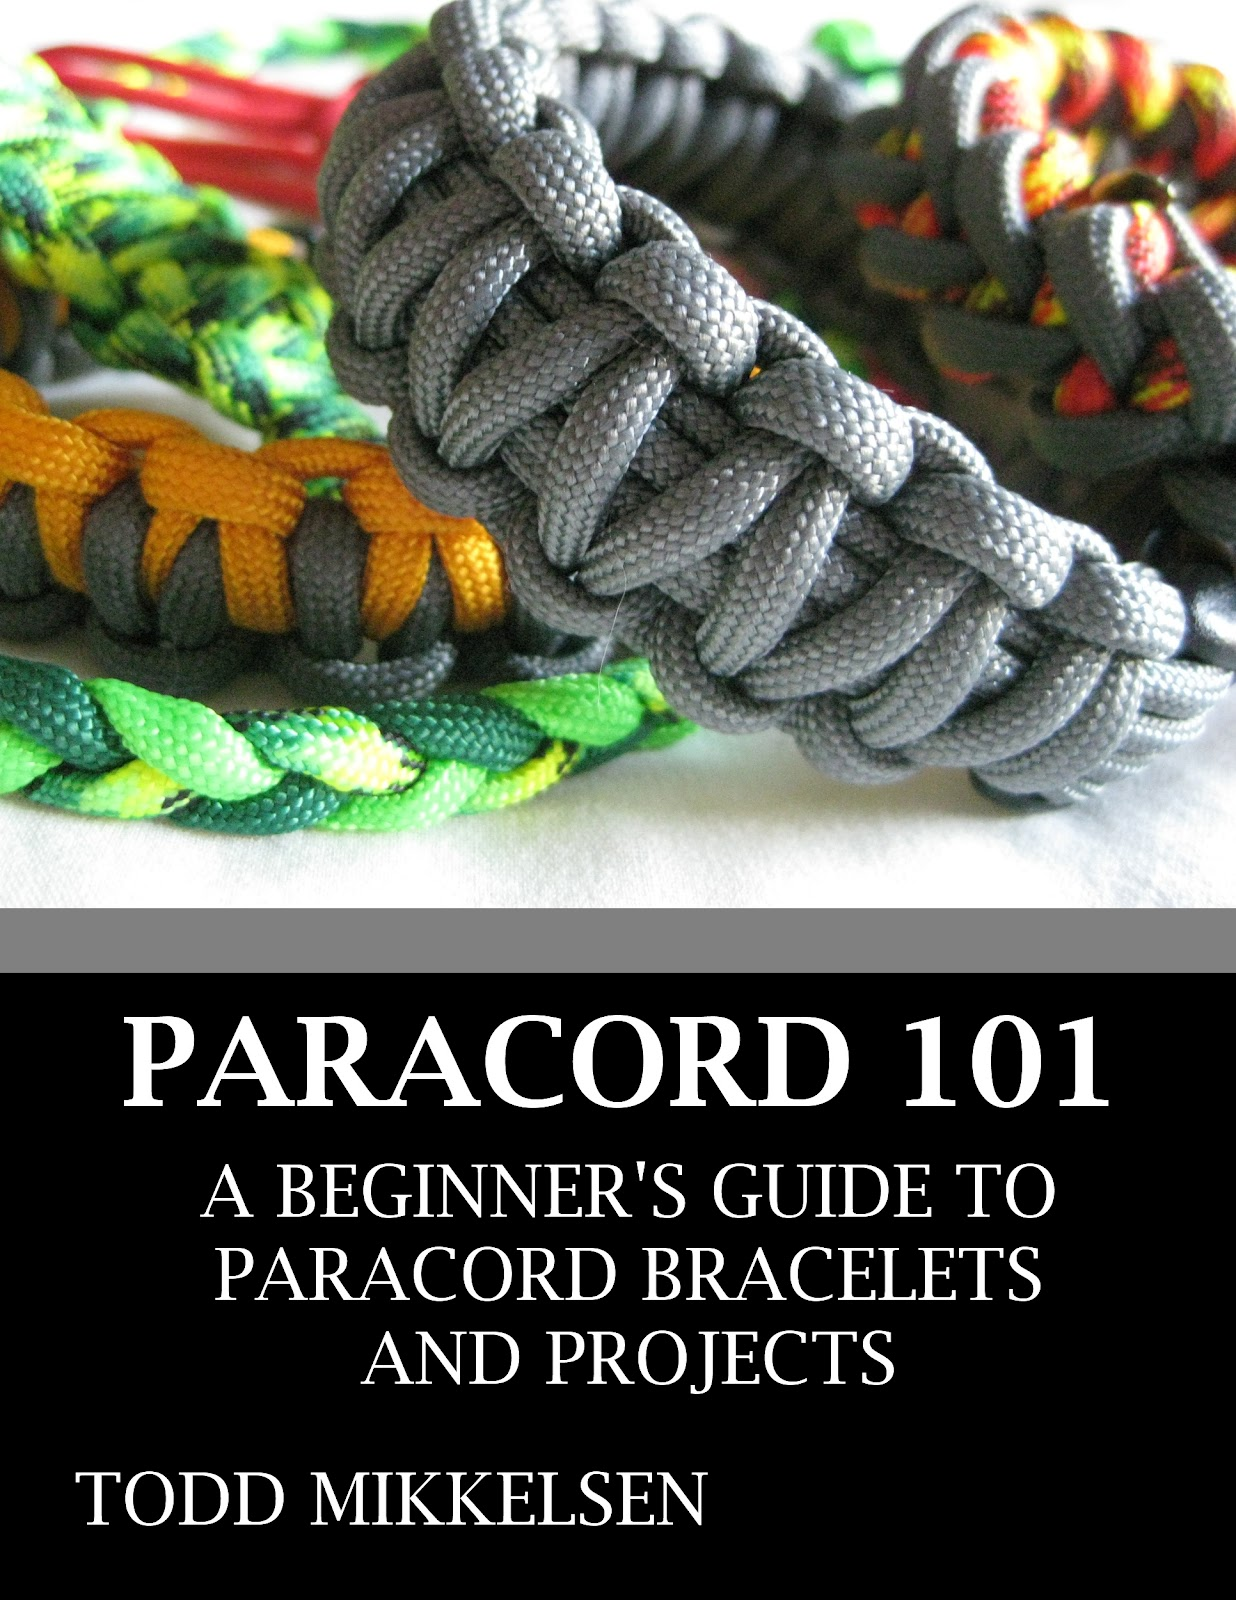 Paracord 101 Paracord 101 A Beginner S Guide To Paracord